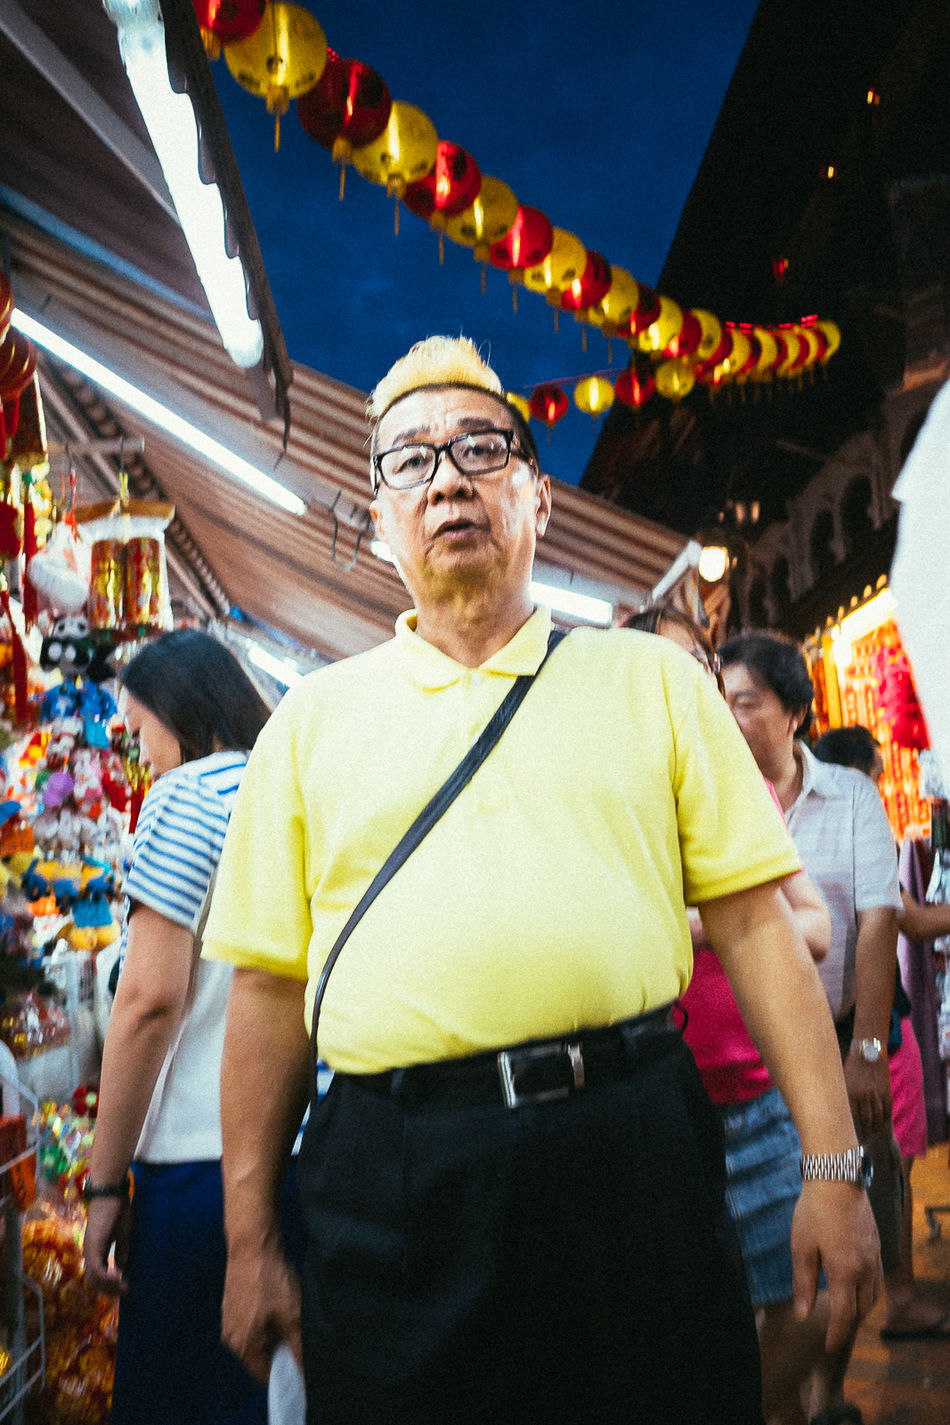 Chinatown, SGP. 2016 © Chit Min Maung http://www.cmmaung.me/ Casual Clothing Chinatown Cmmaung Cmmaung.me Gr Lifestyles Portrait Real People Ricoh Street Streetphoto_color Streetphotography